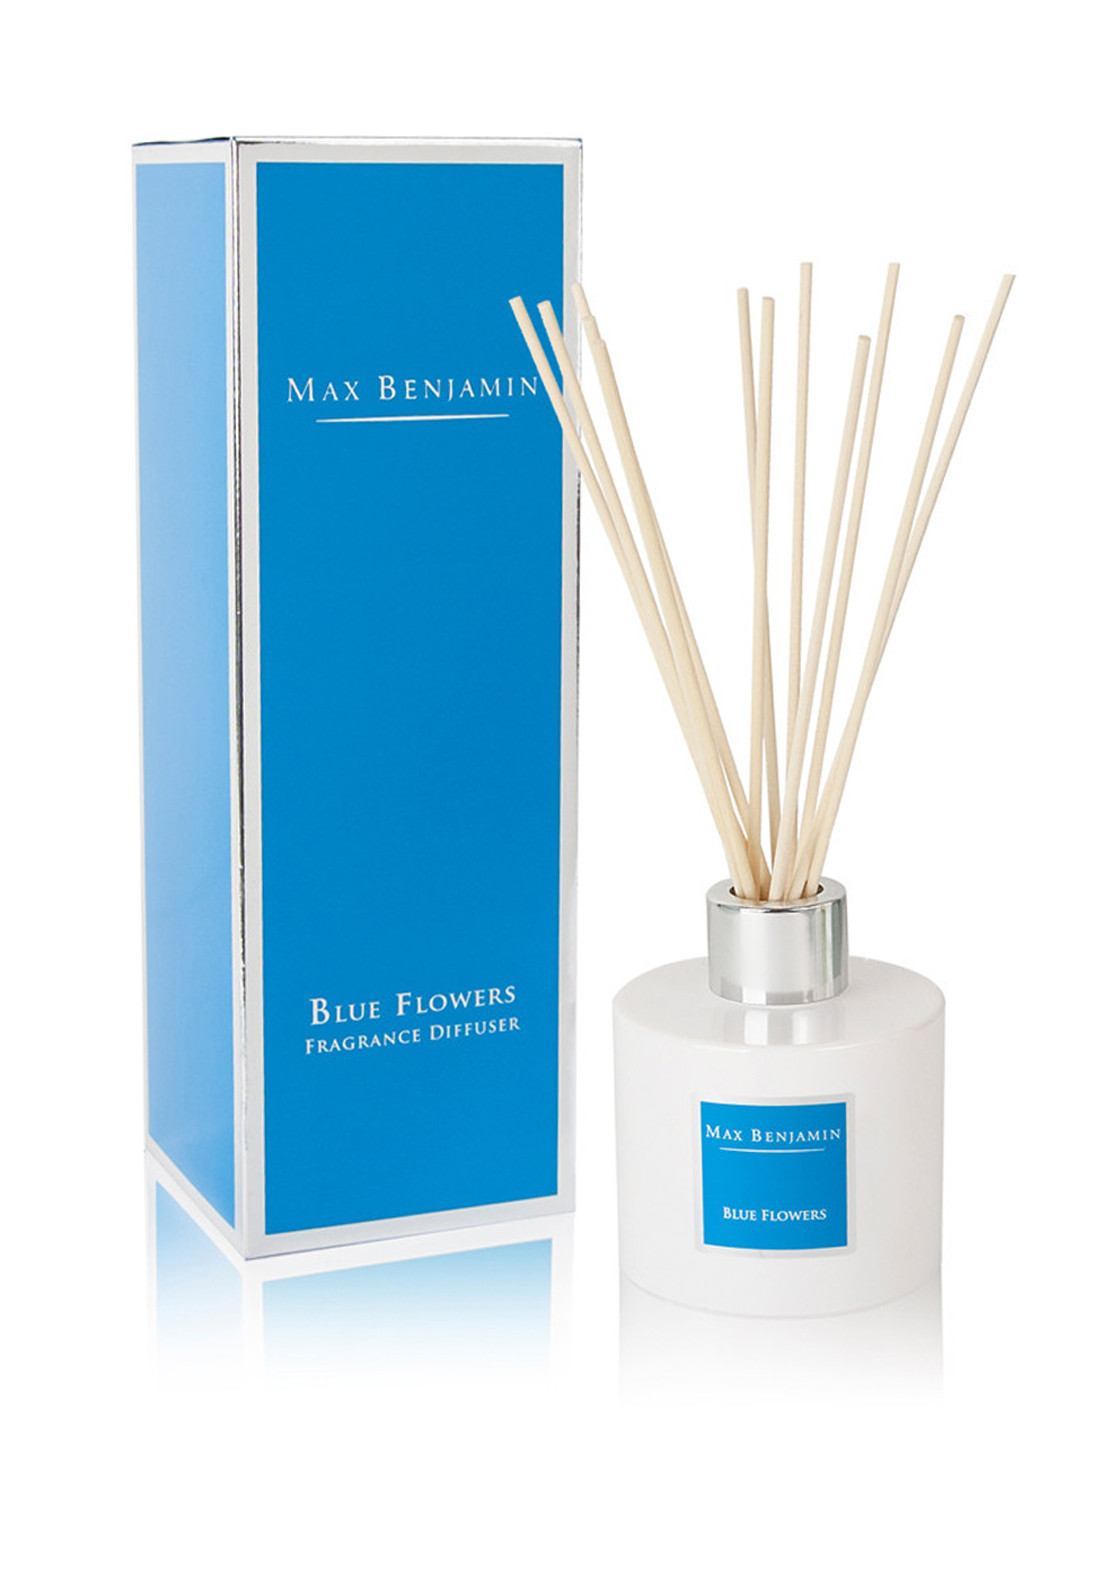 Max Benjamin Blue Flowers Natural Fragrance Diffuser 150ml